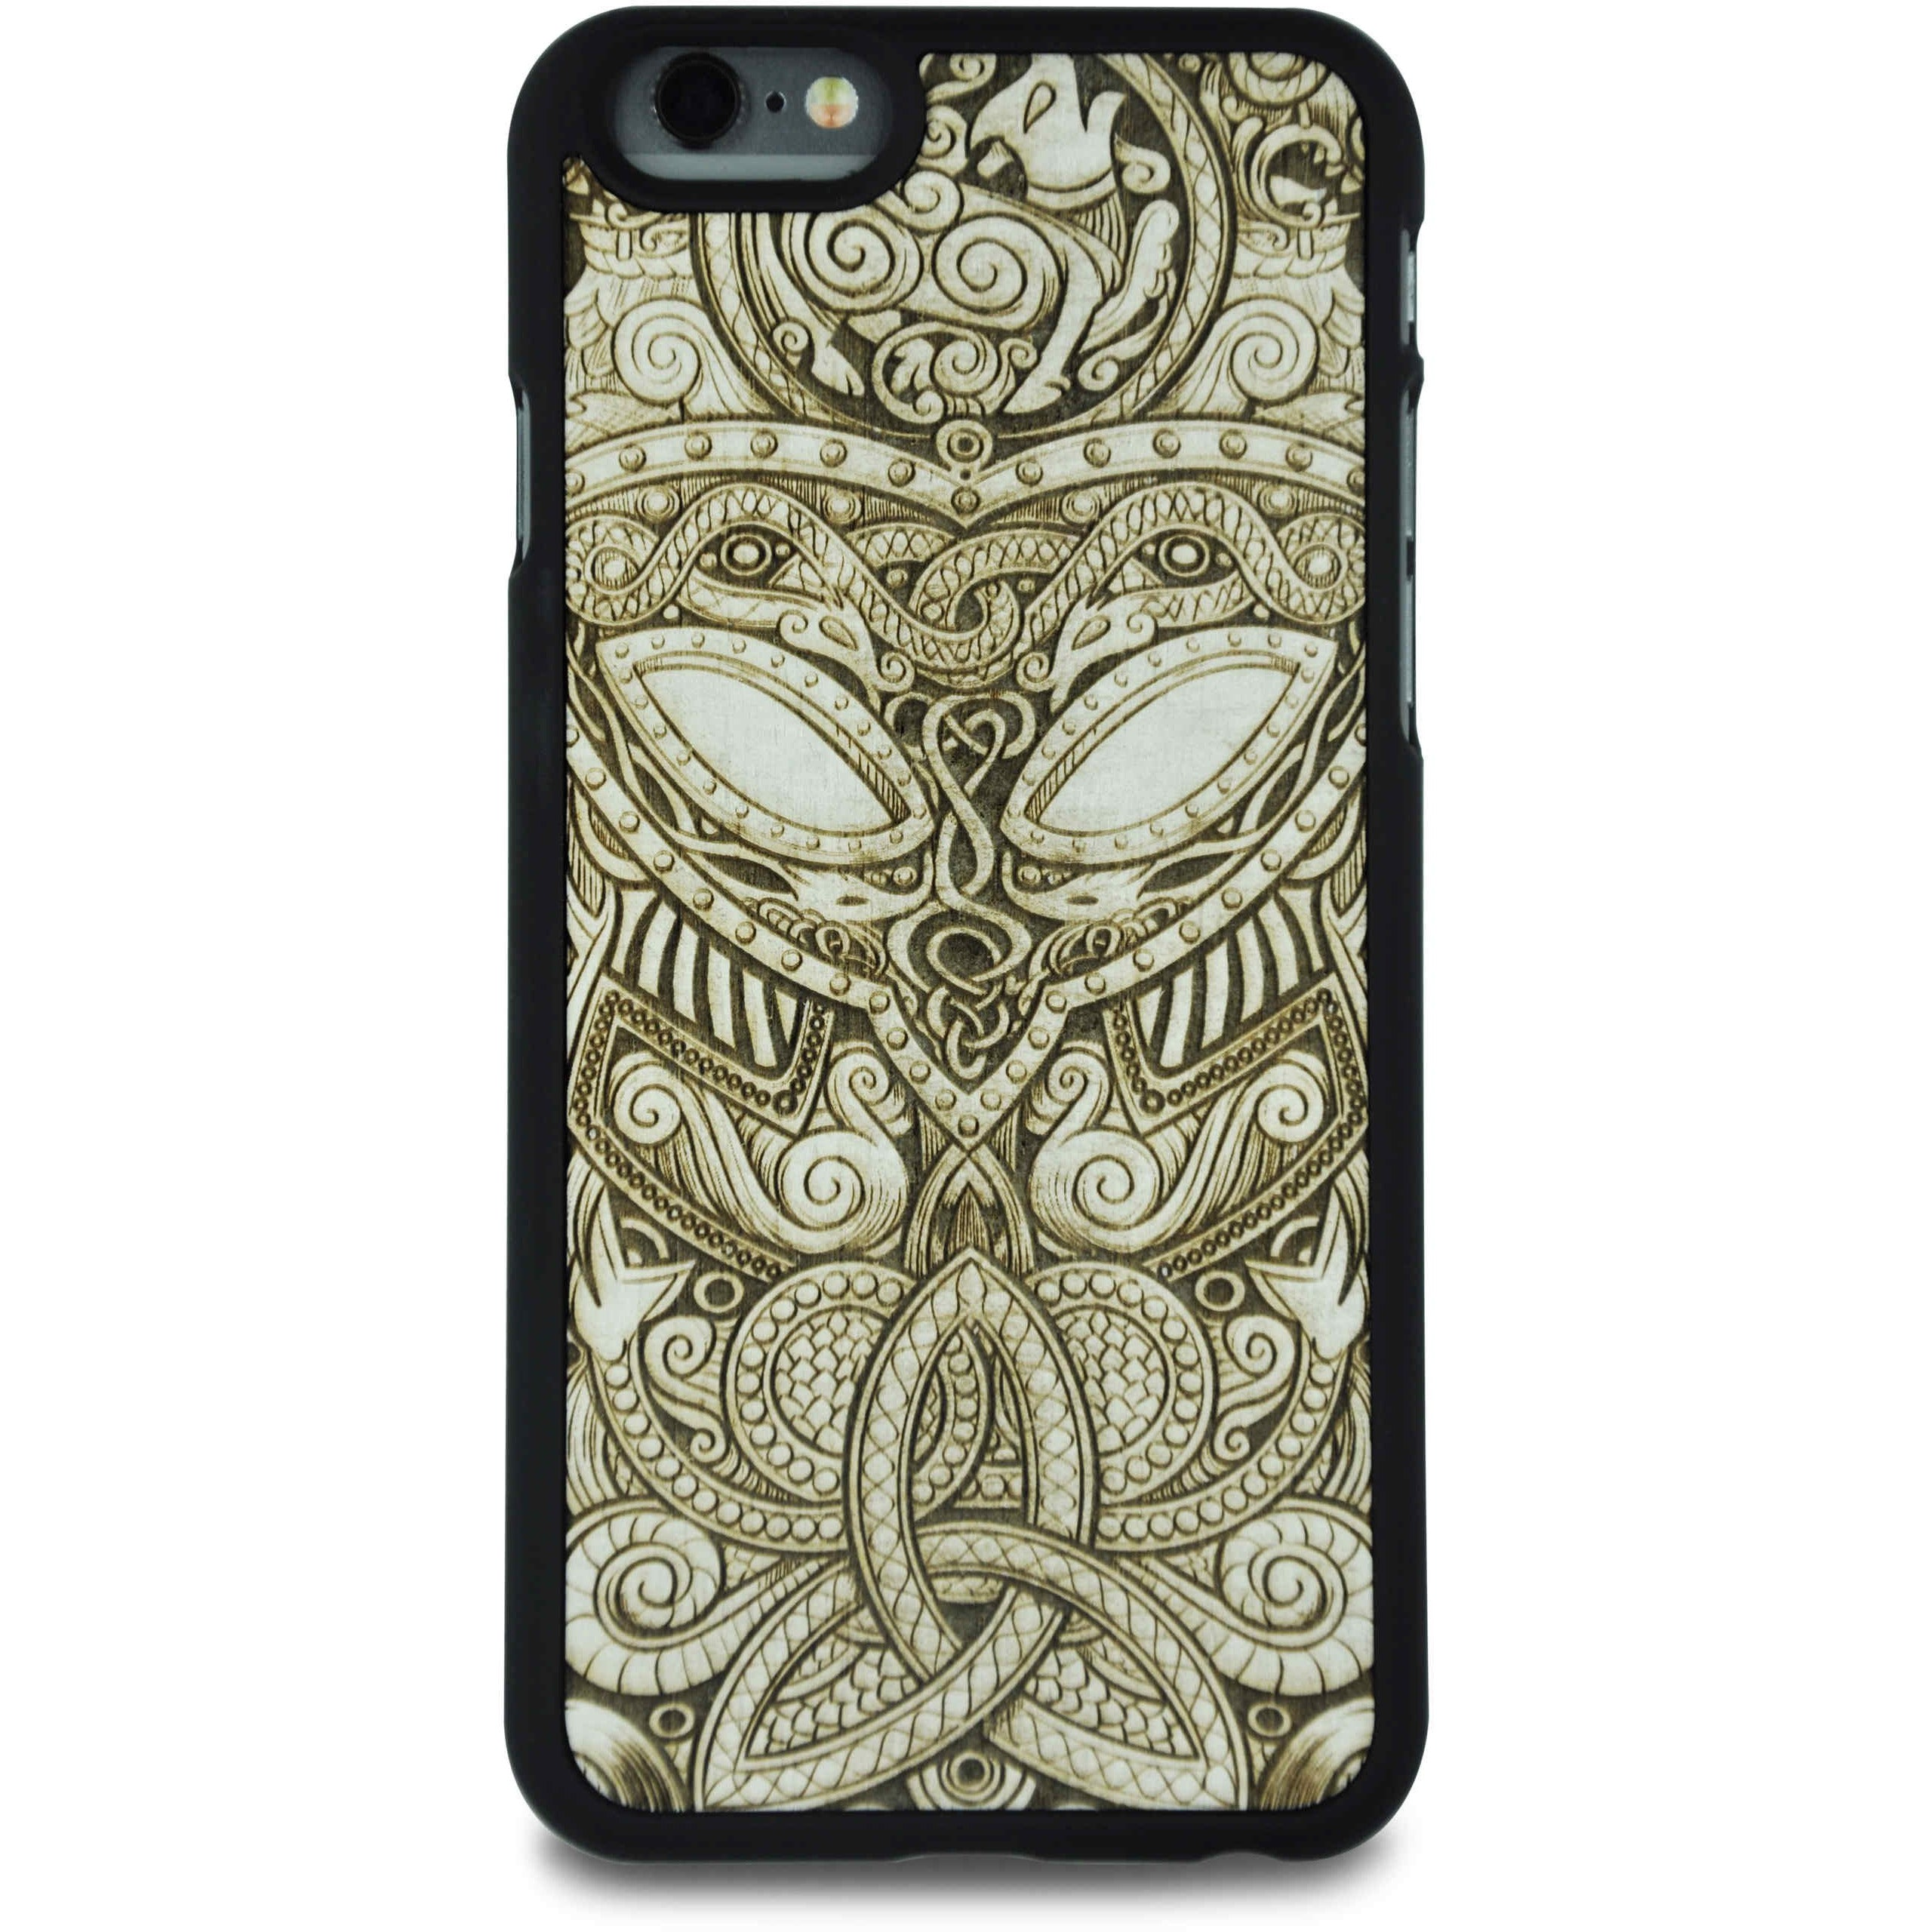 MMORE WhiteWood Viking Mask Phone case